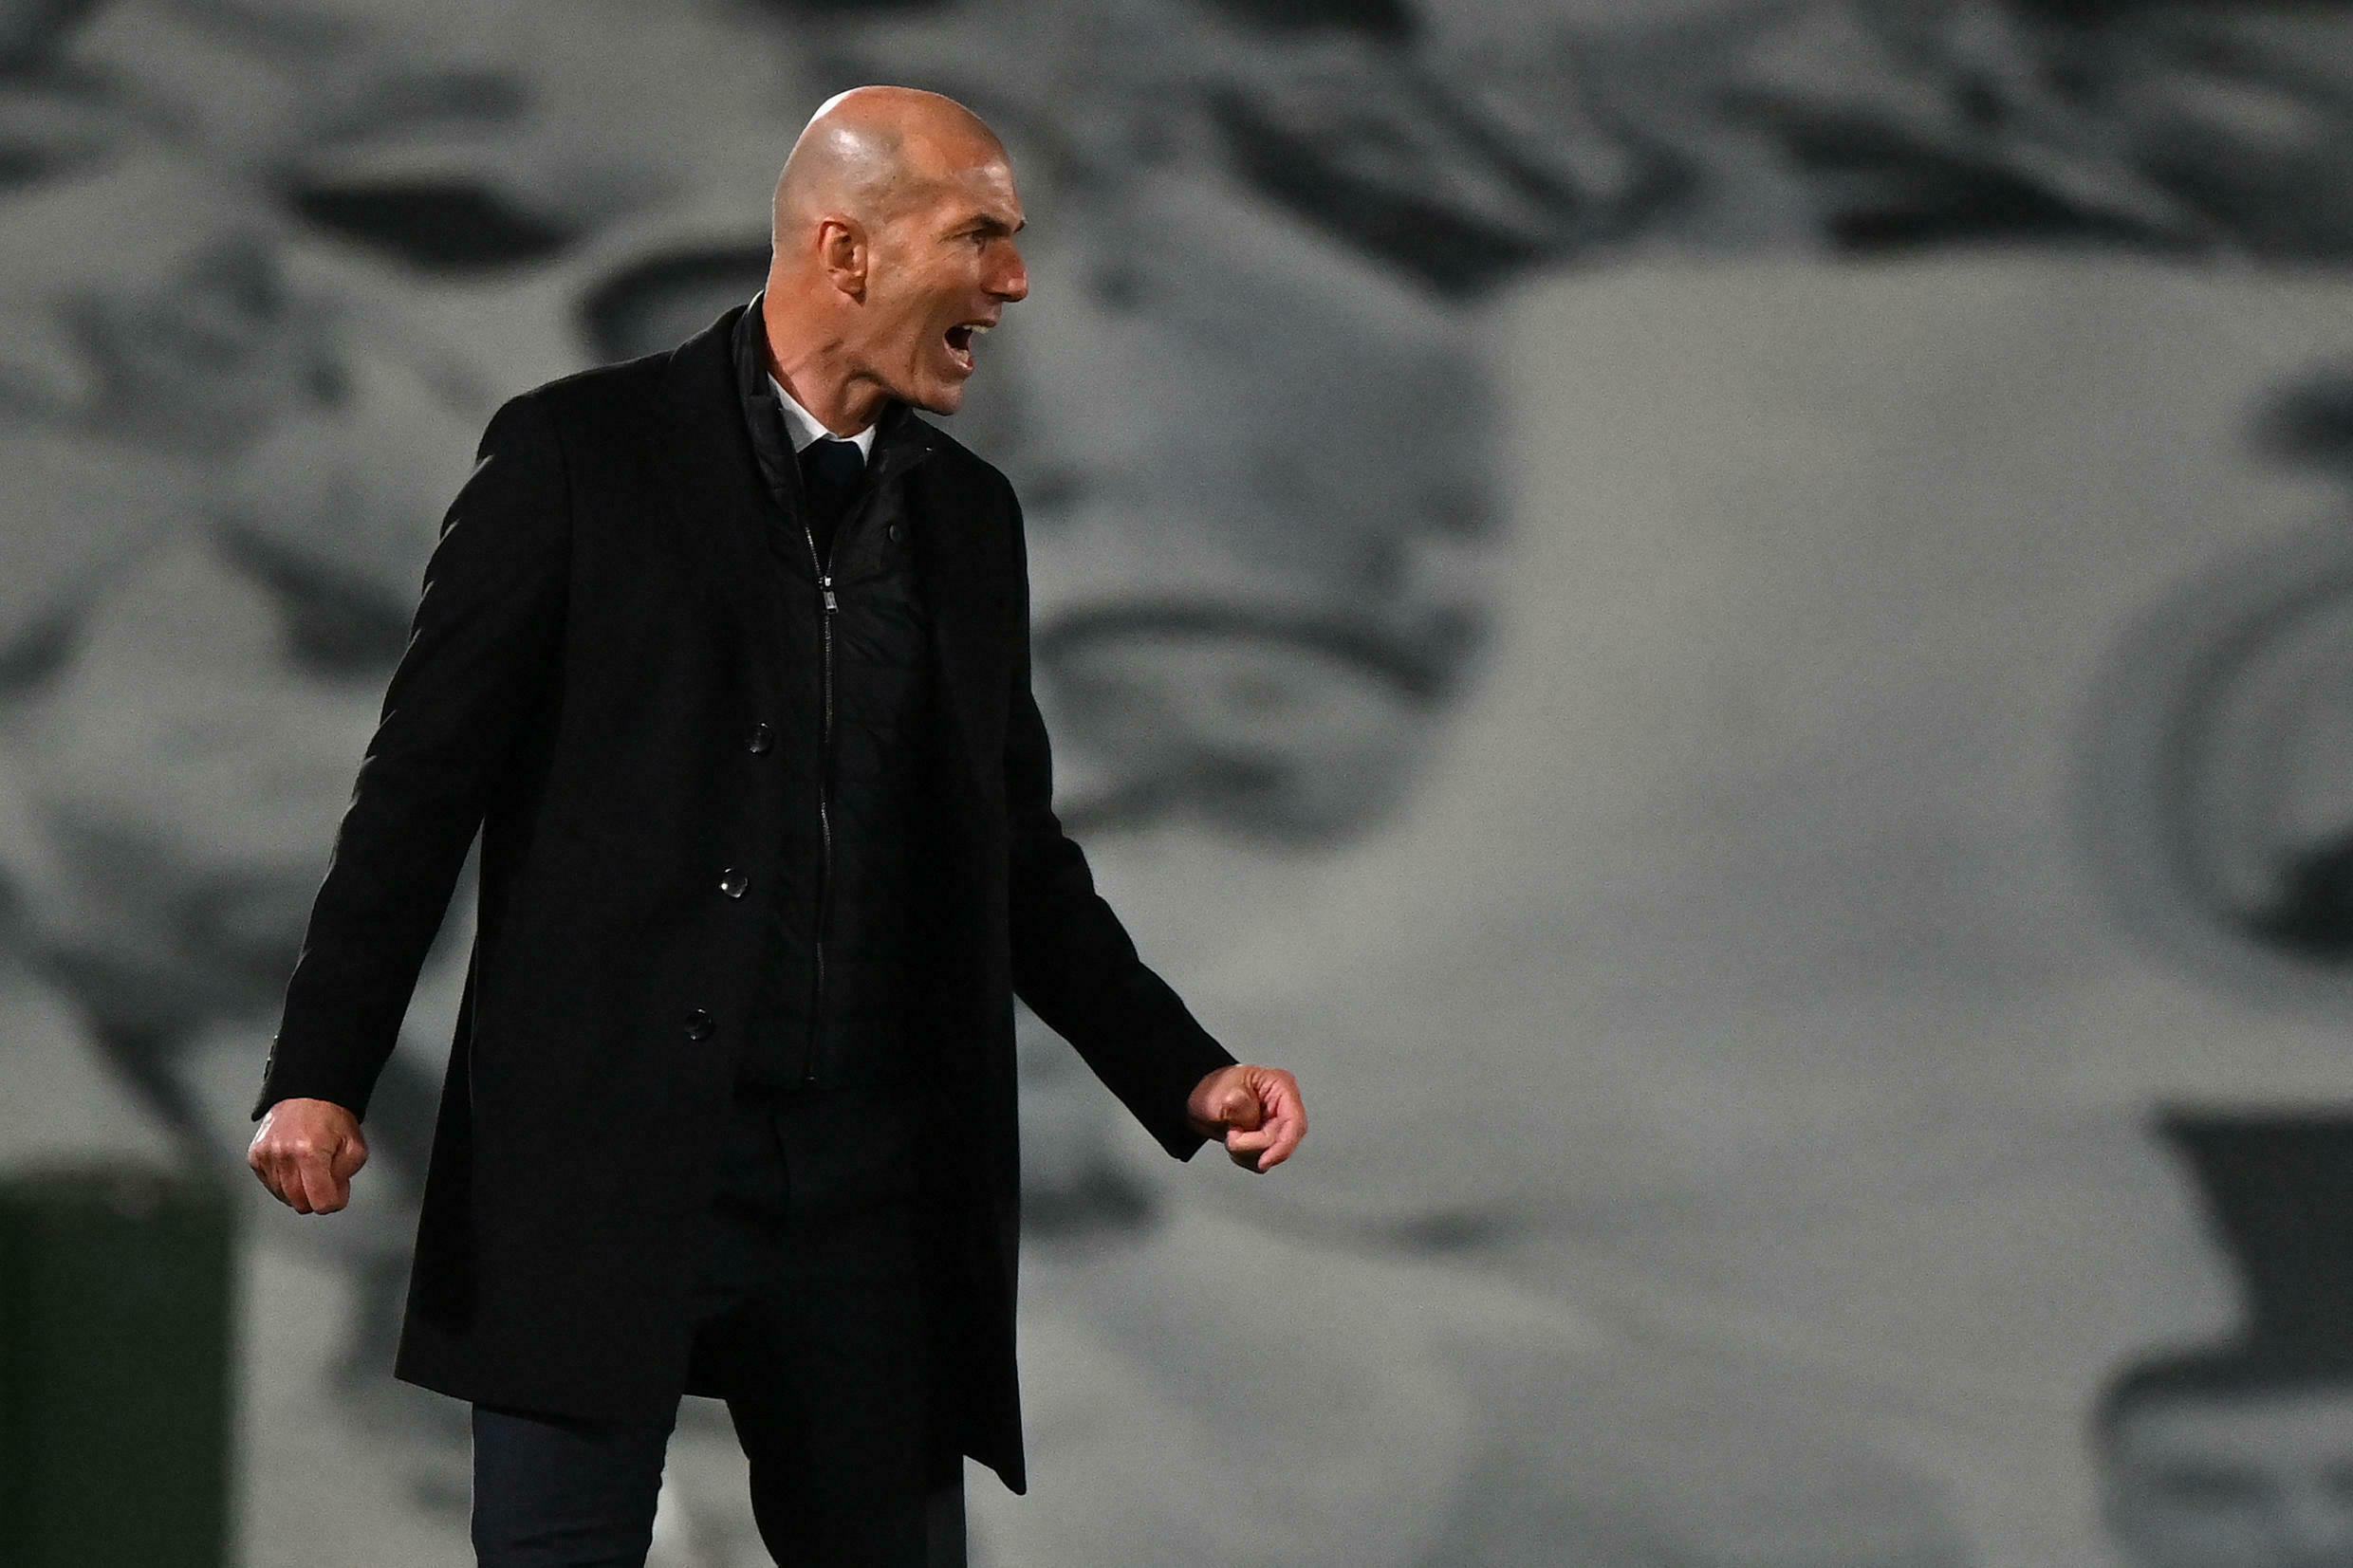 Zinedine Zidane has Real Madrid in contention again for titles in La Liga and the Champions League